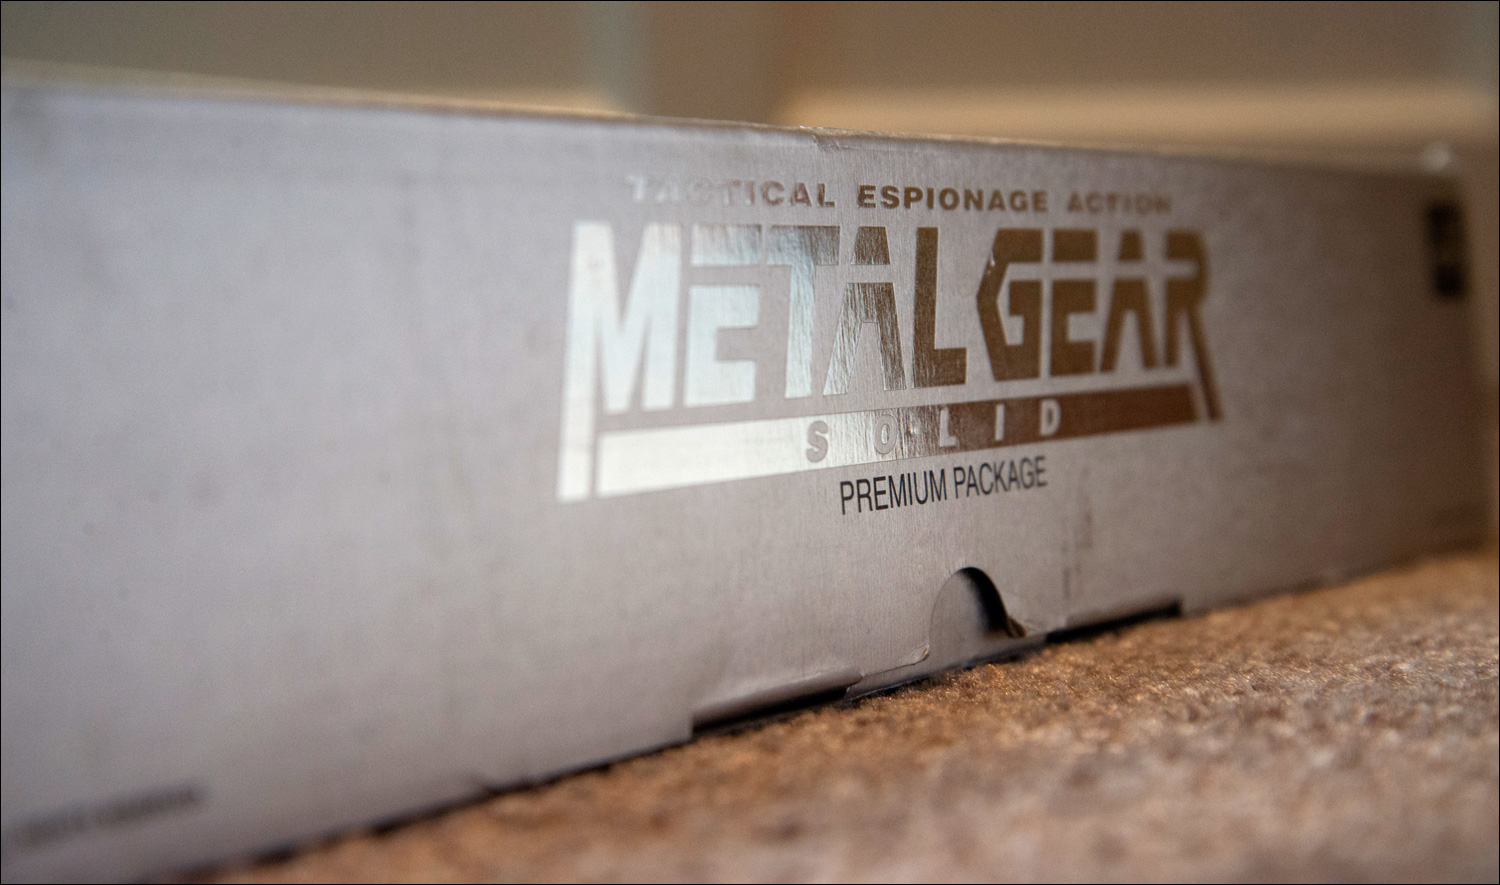 Metal-Gear-Solid-Premium-Package-Side